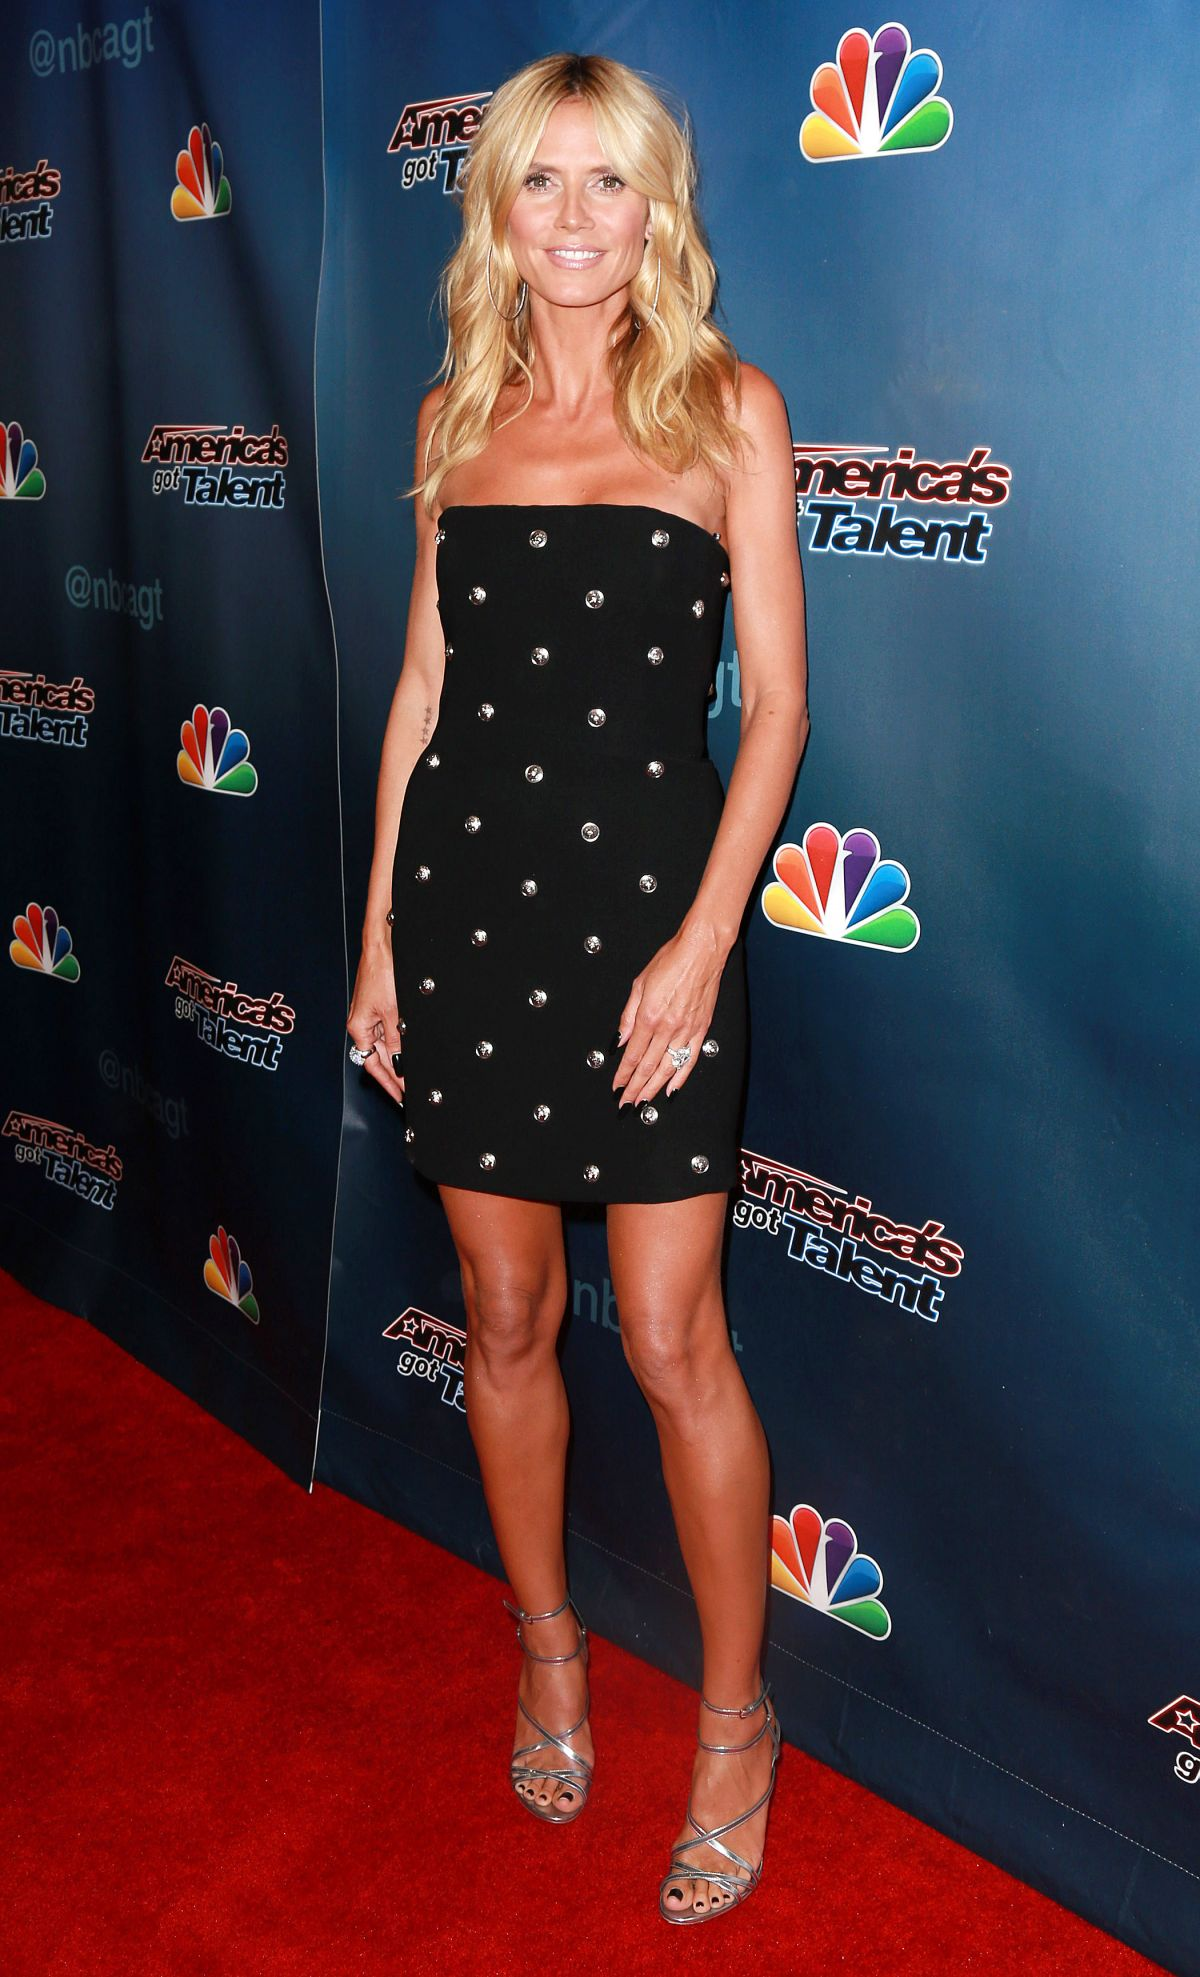 Heidi Klum At Americas Got Talent Post Show Red Carpet Event In Hollywood